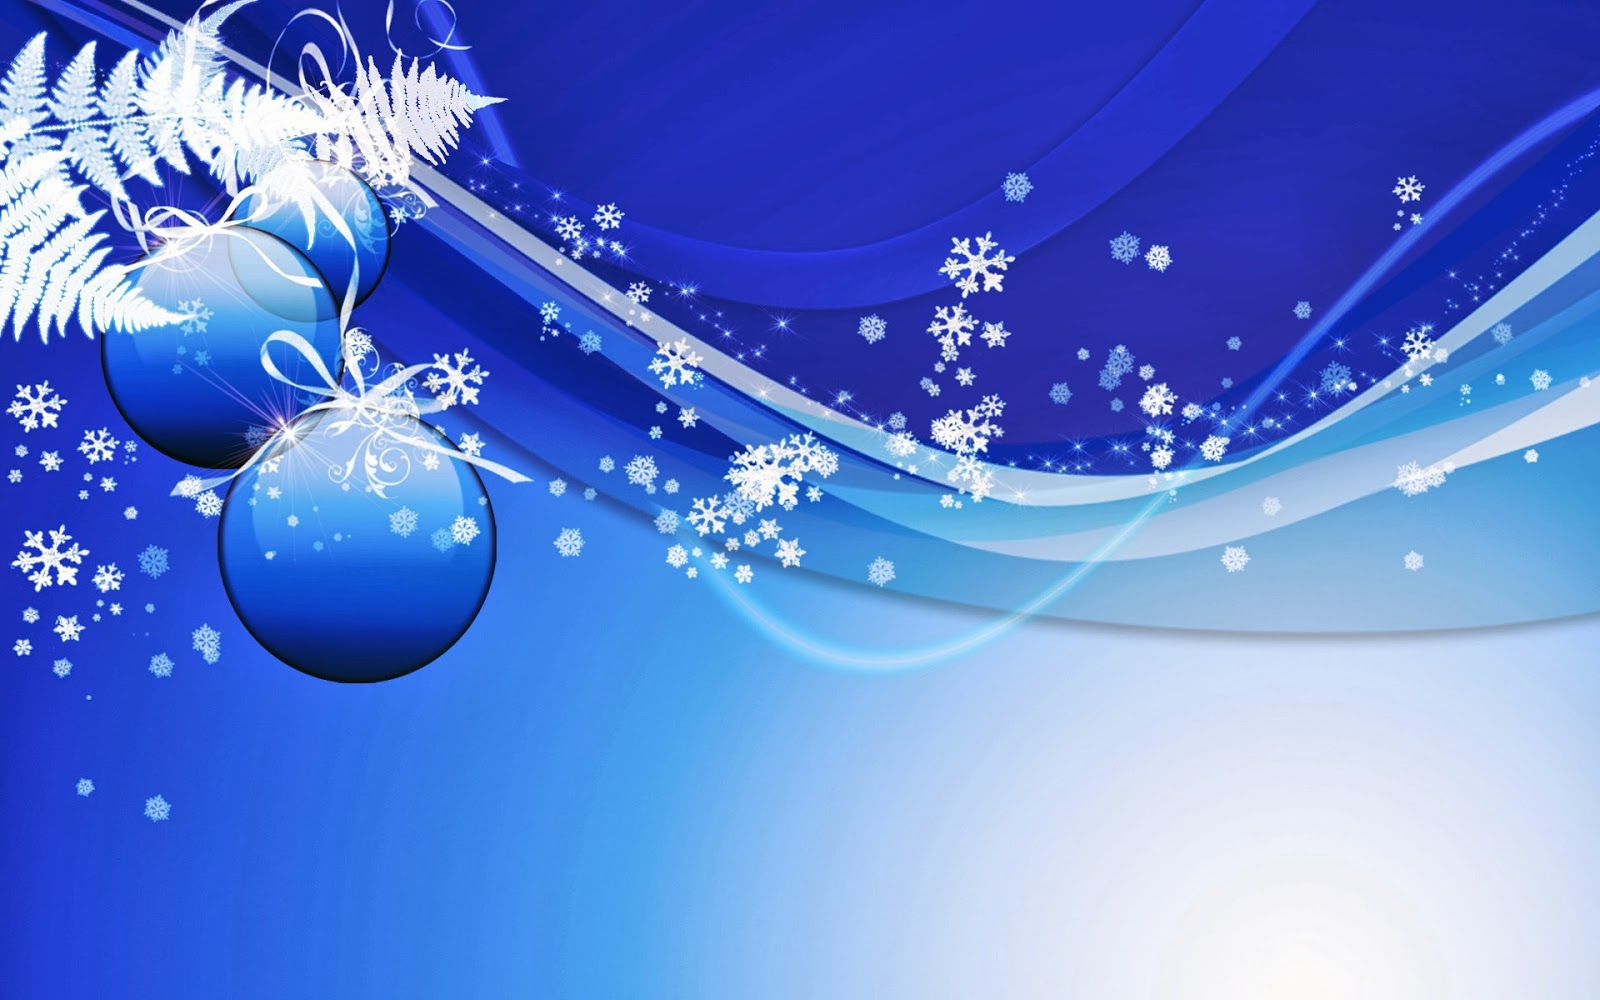 Christmas Wallpapers Download for Free